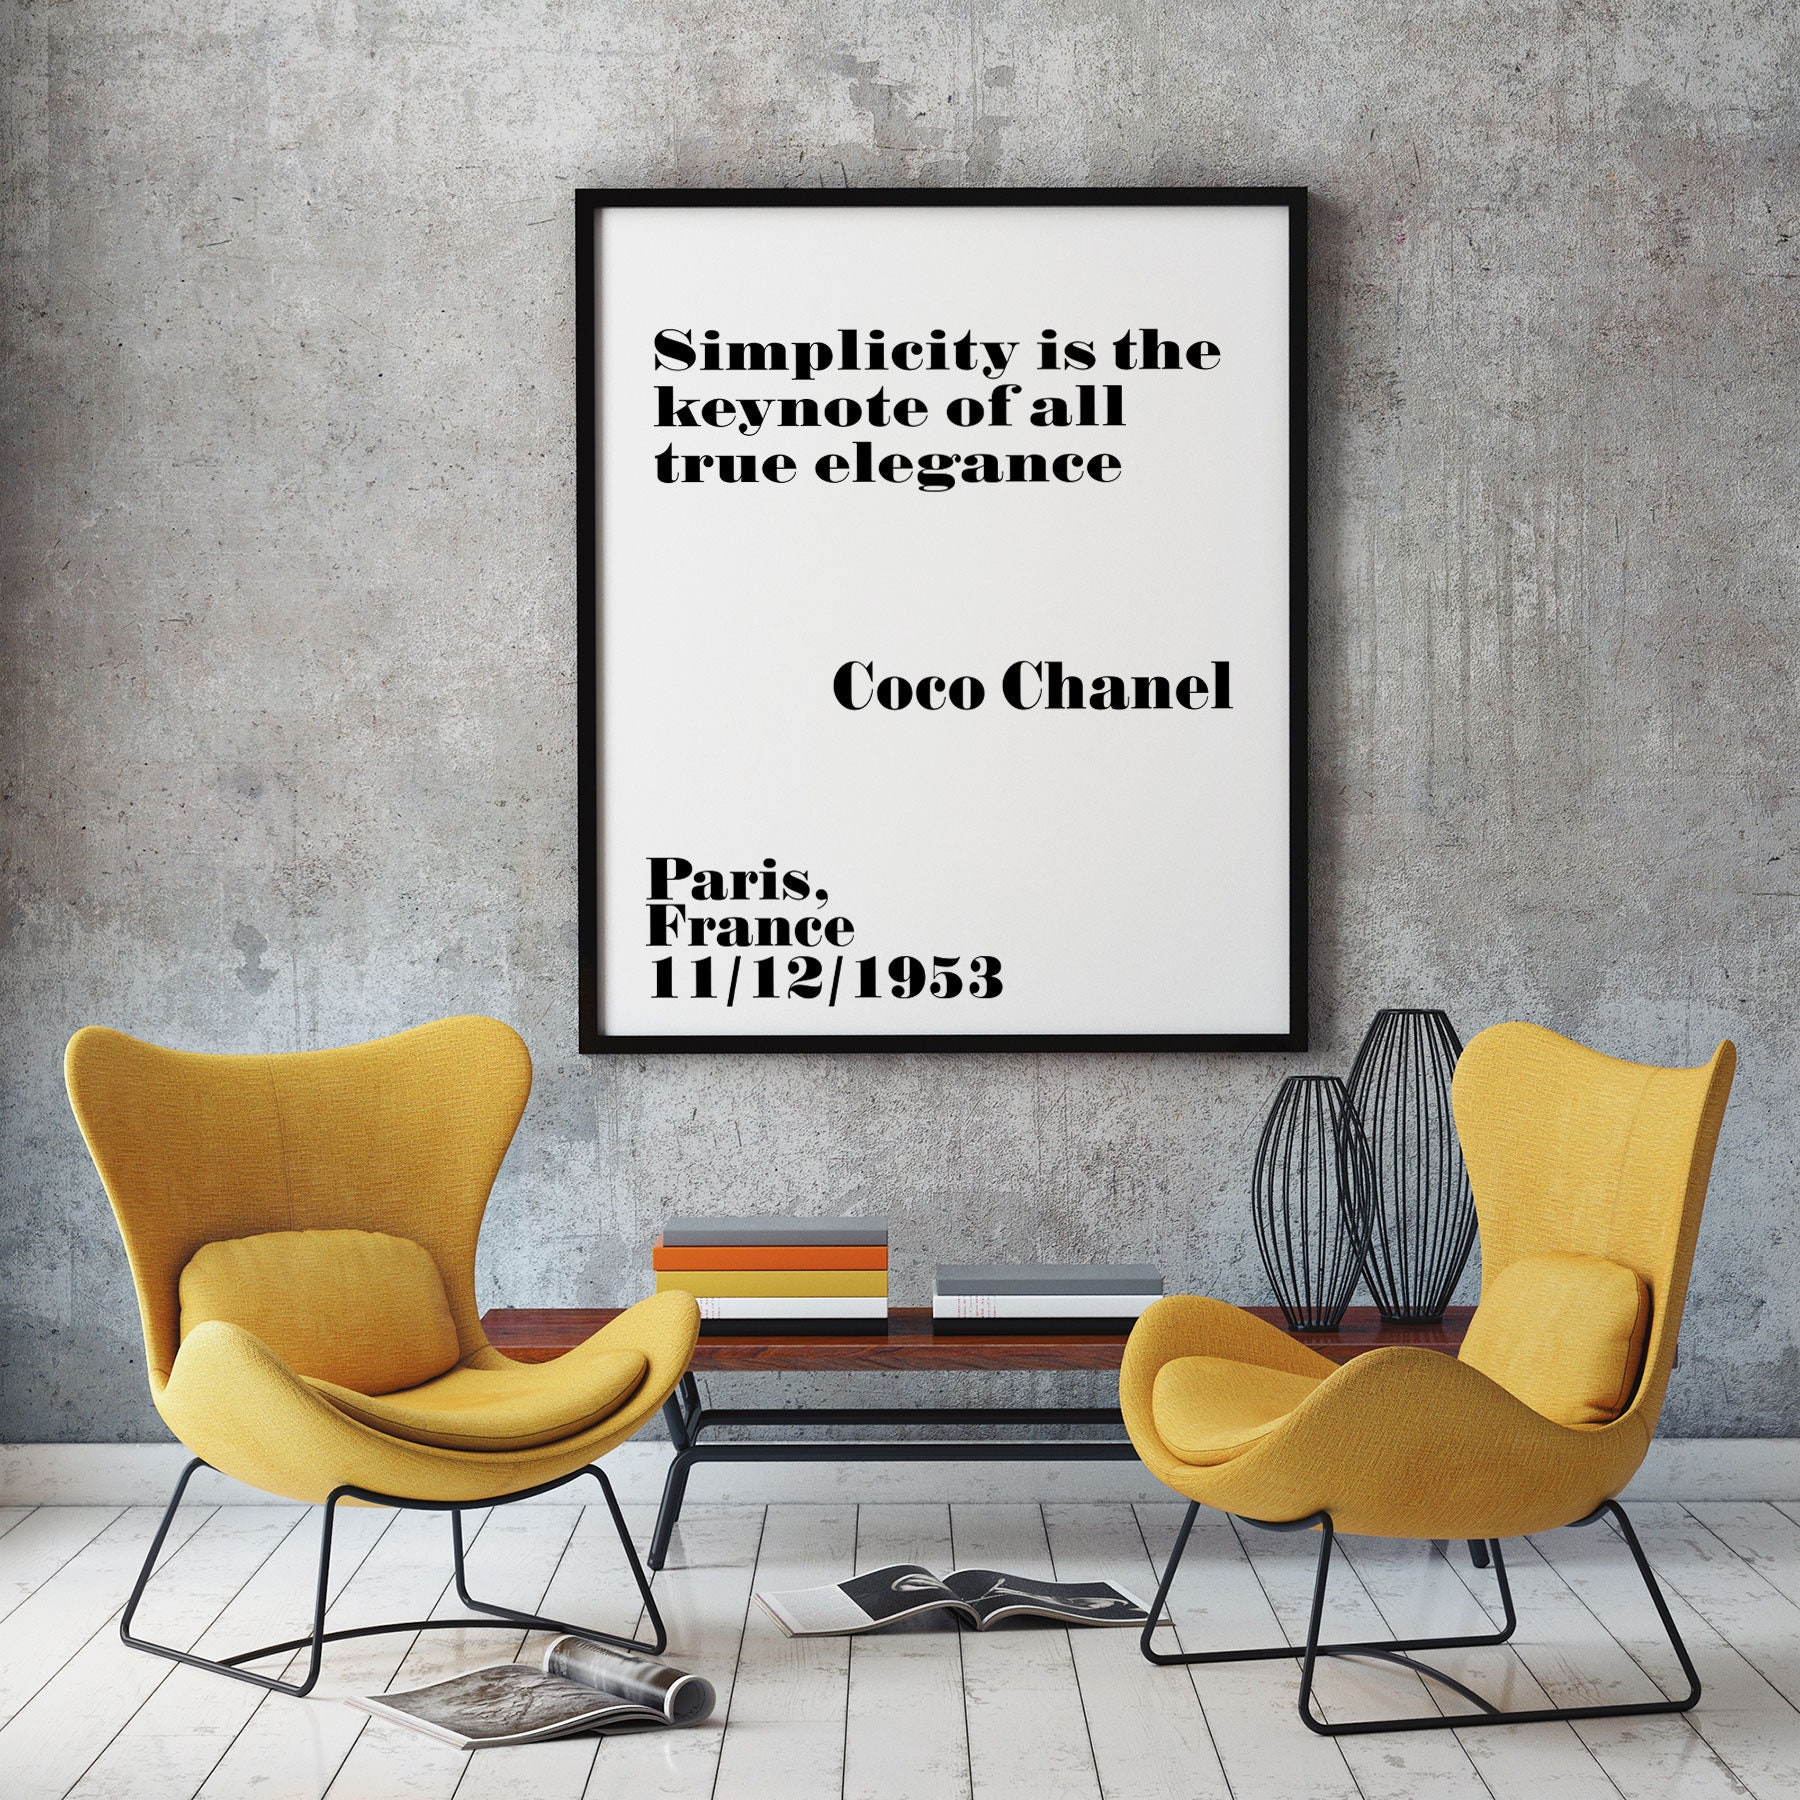 Coco Chanel Simplicity Is The Keynote Of All True Elegance Quote Chanel No 5 Chanel Wall Art Chanel Poster Fashion Decor Fashion Poster